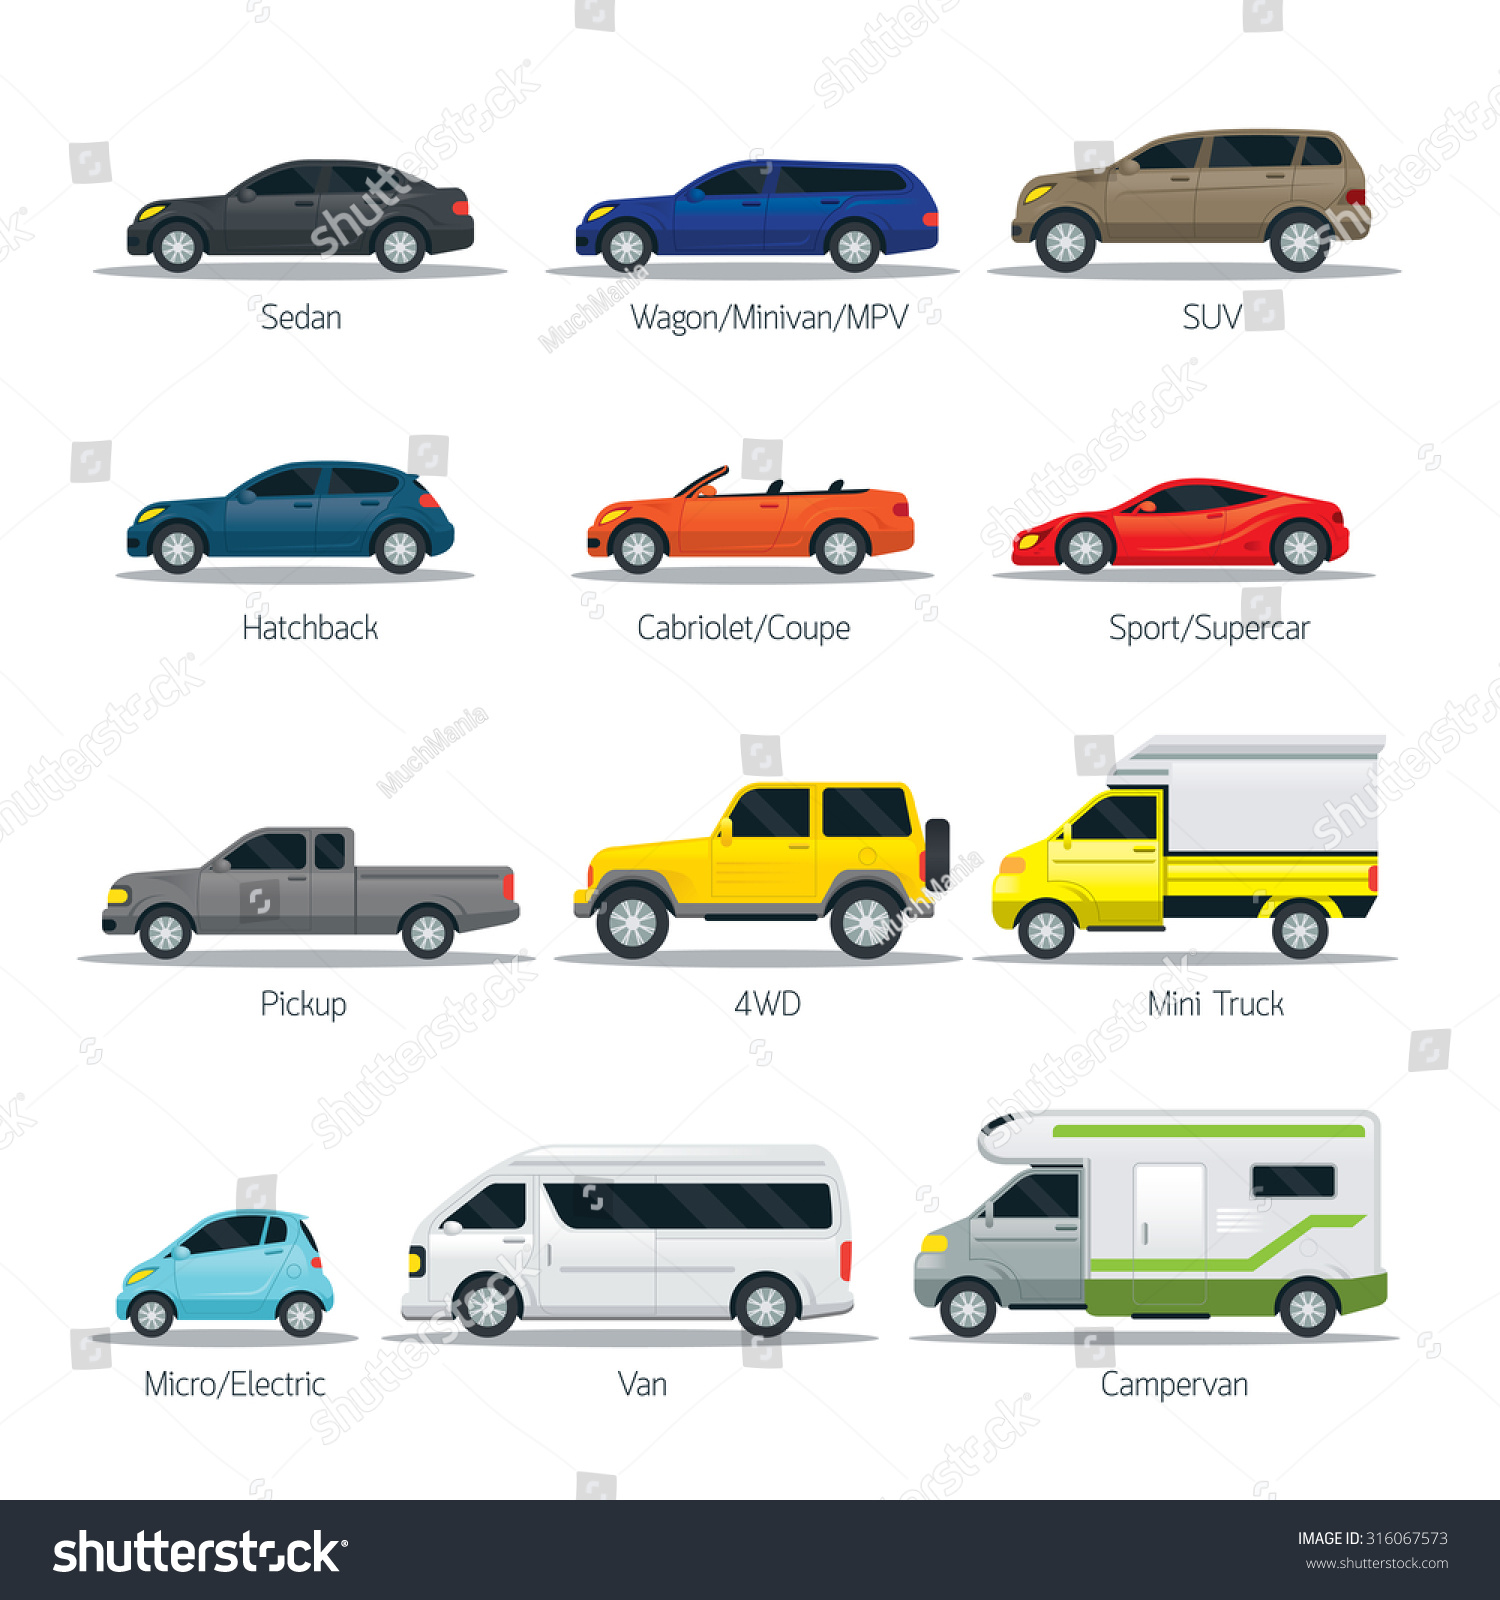 Uber Types Of Vehicles >> Car Type Model Objects Icons Set Stock Vector 316067573 - Shutterstock